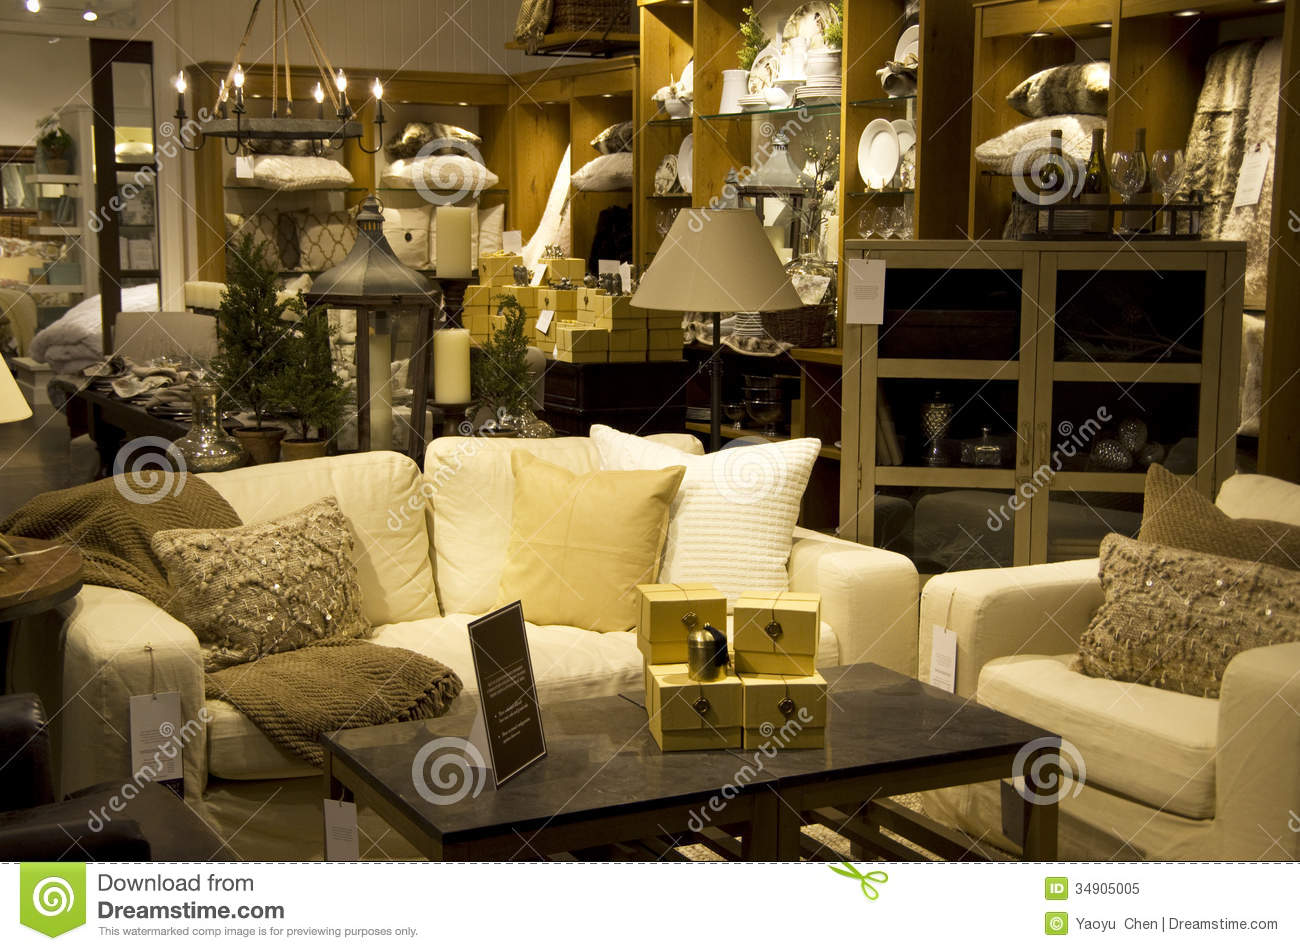 Luxury furniture home decor store royalty free stock photo for Best home decor